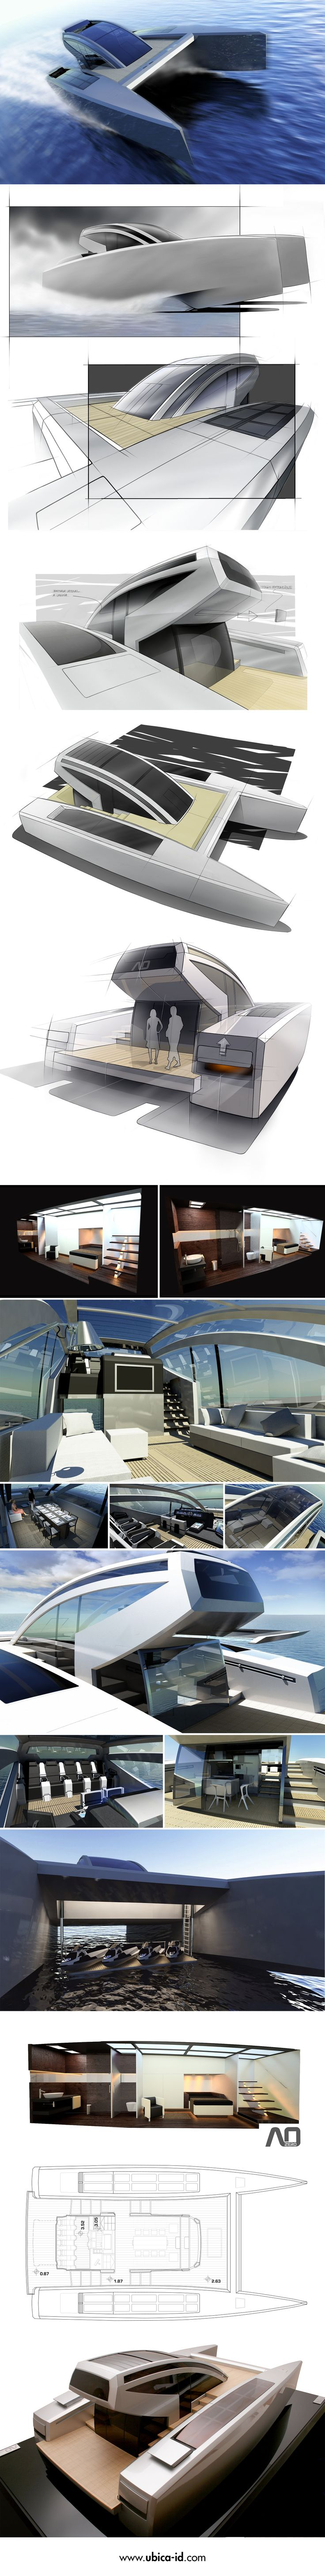 Best 25+ Big yachts ideas on Pinterest | Yachts, Luxury yachts and ...